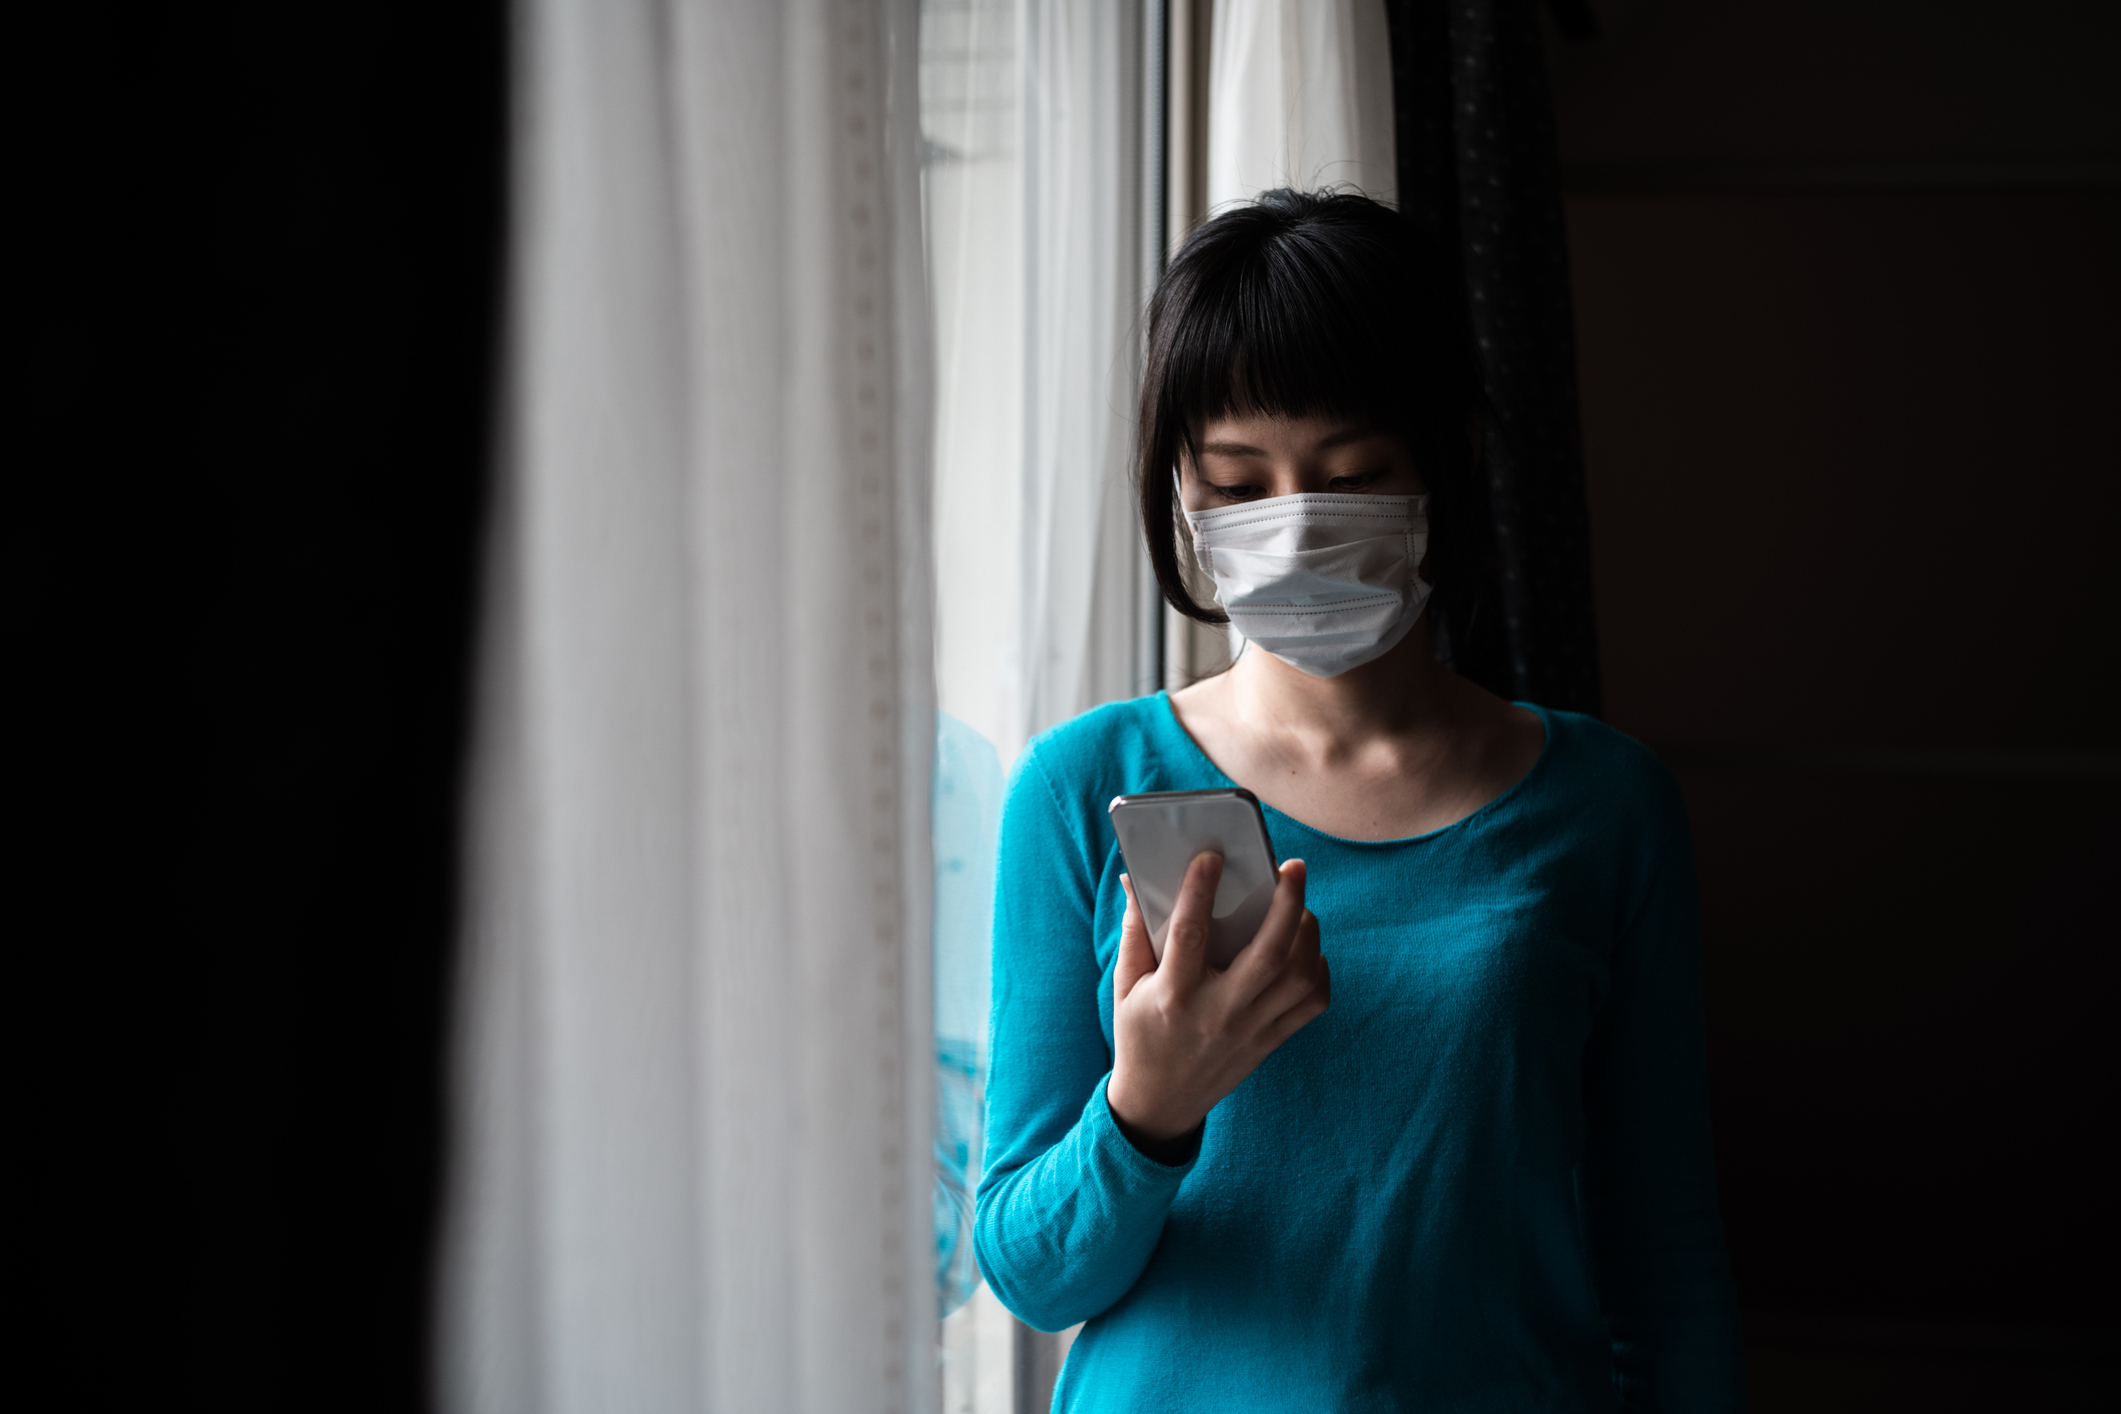 Indoor portrait of Asian woman wearing surgical mask operating smartphone at the window